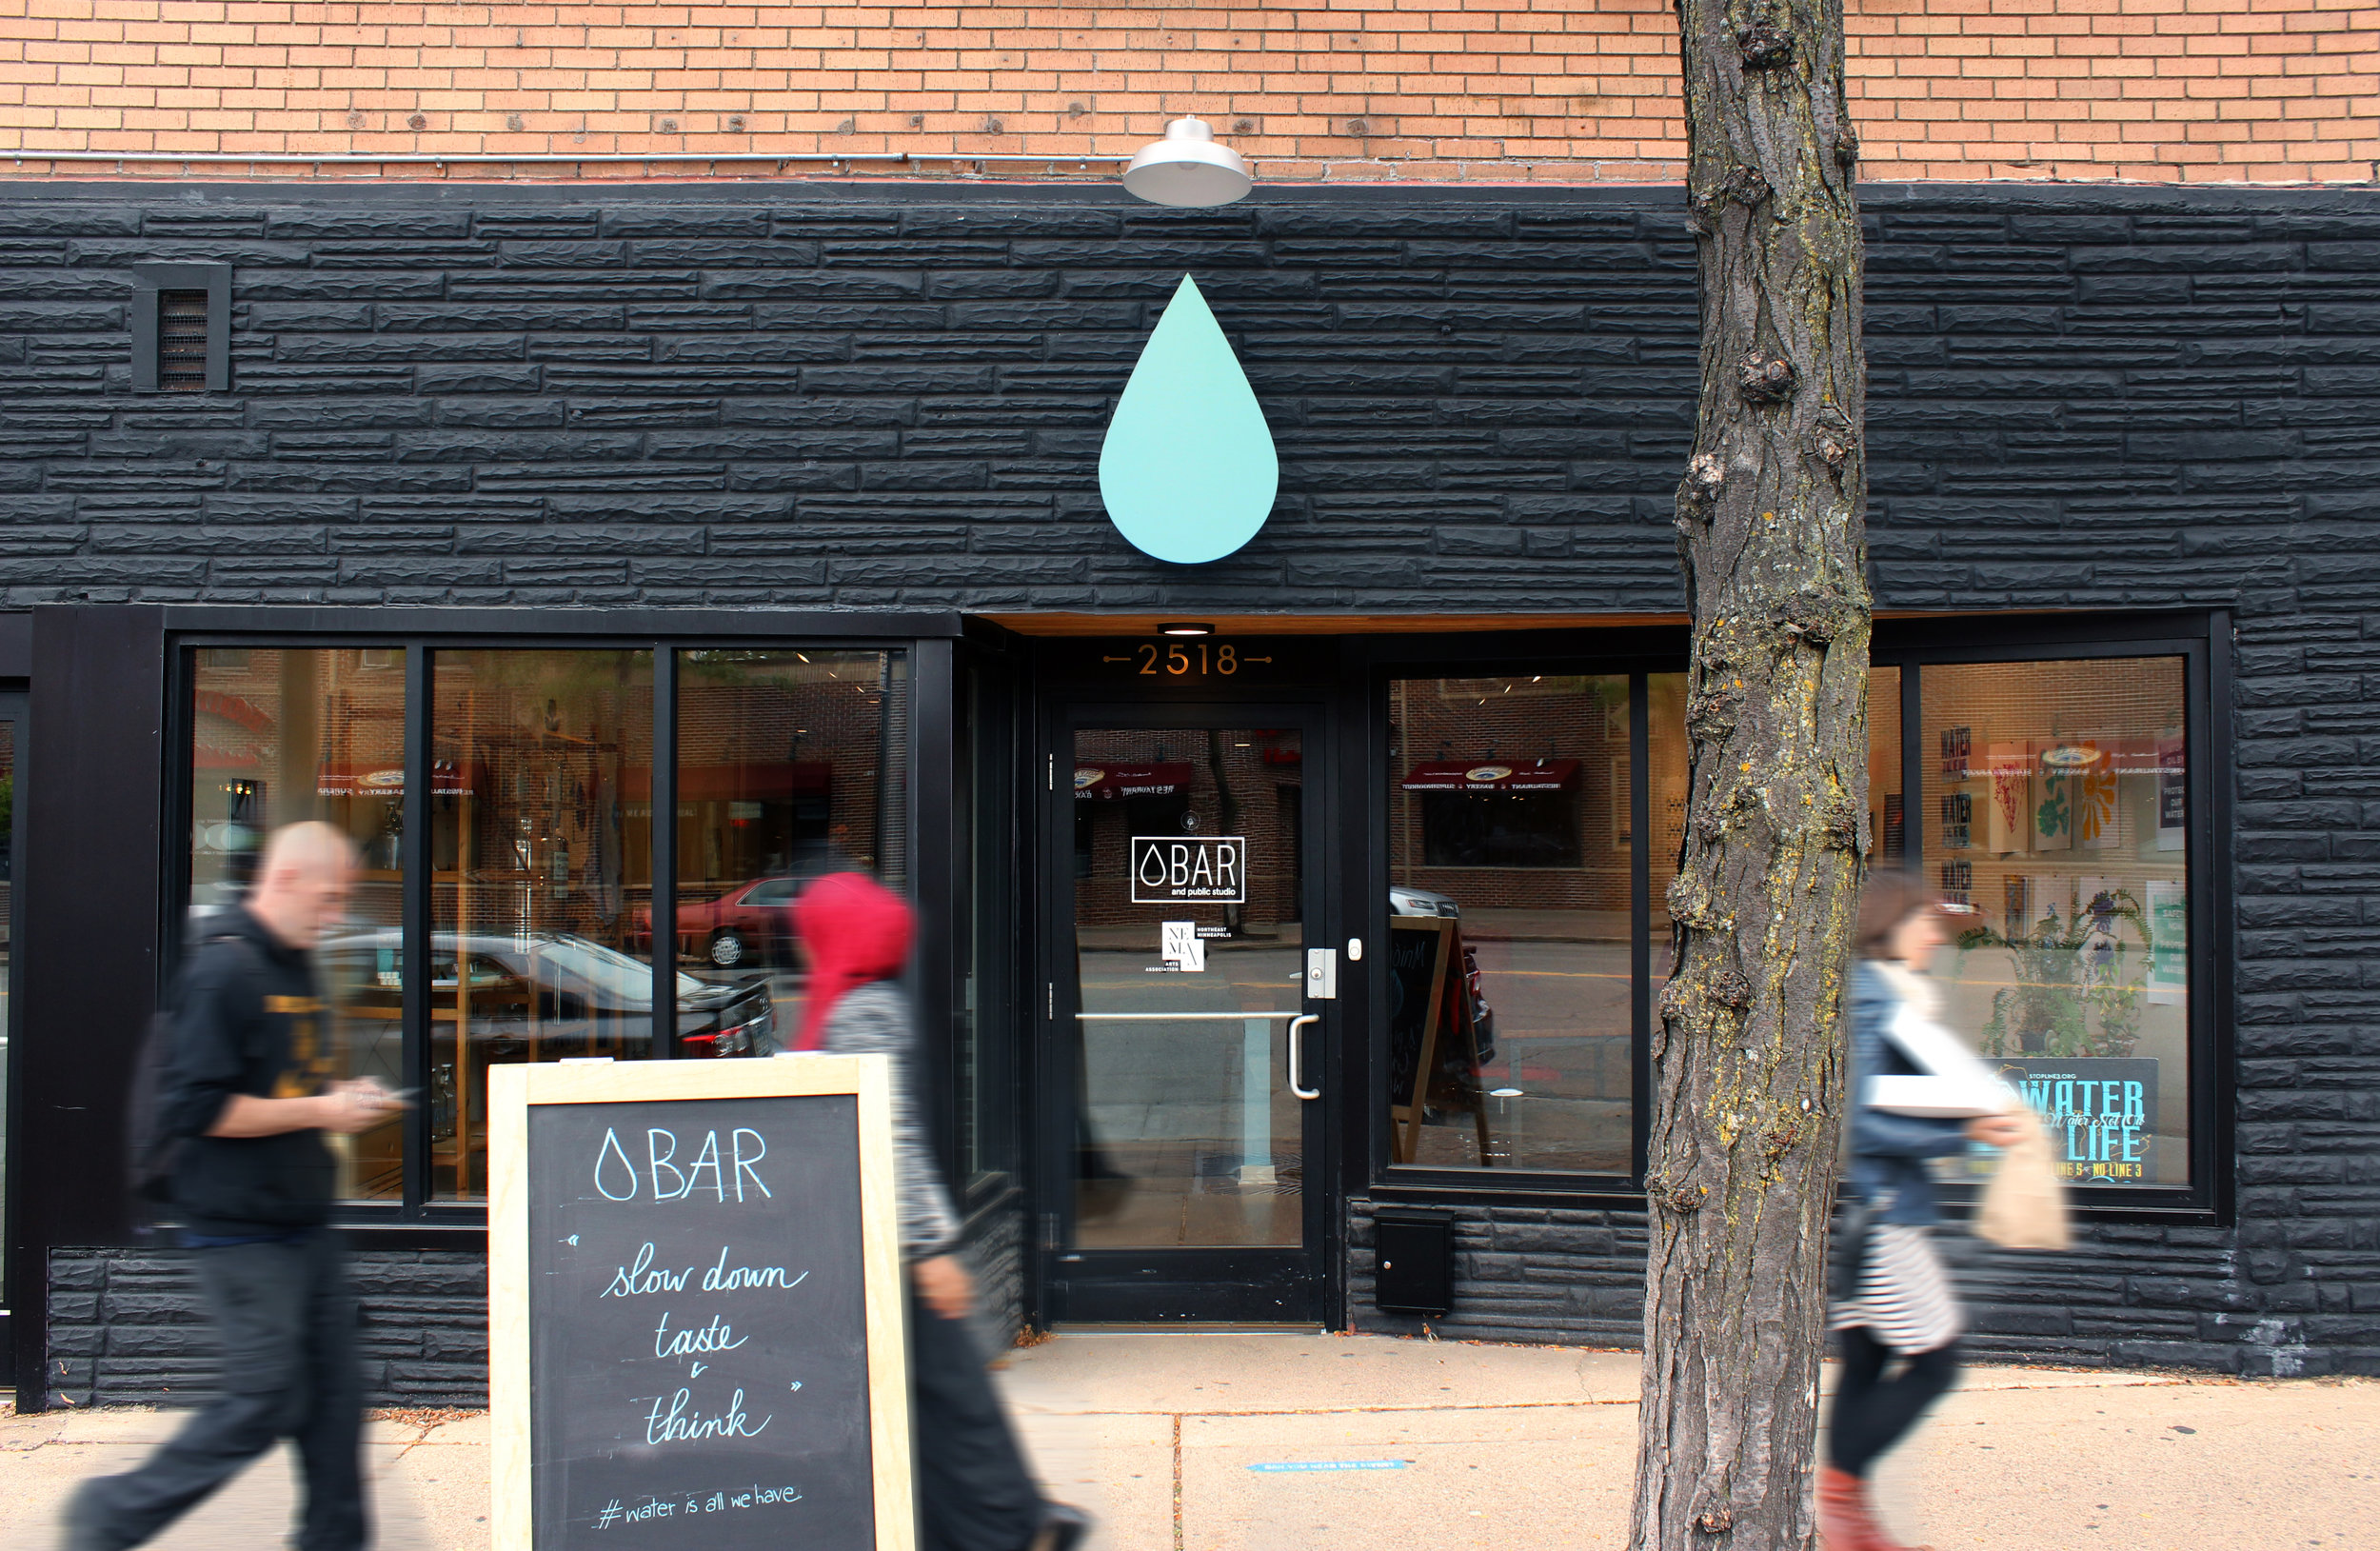 I am one of the founding artists and Collaborative Directors of     Water Bar & Public Studio      (2014 - 2019)   , an art and community space, cross-sector collaborative network, and emergent strategy. We serve water to build transformative relationships and to shift culture.